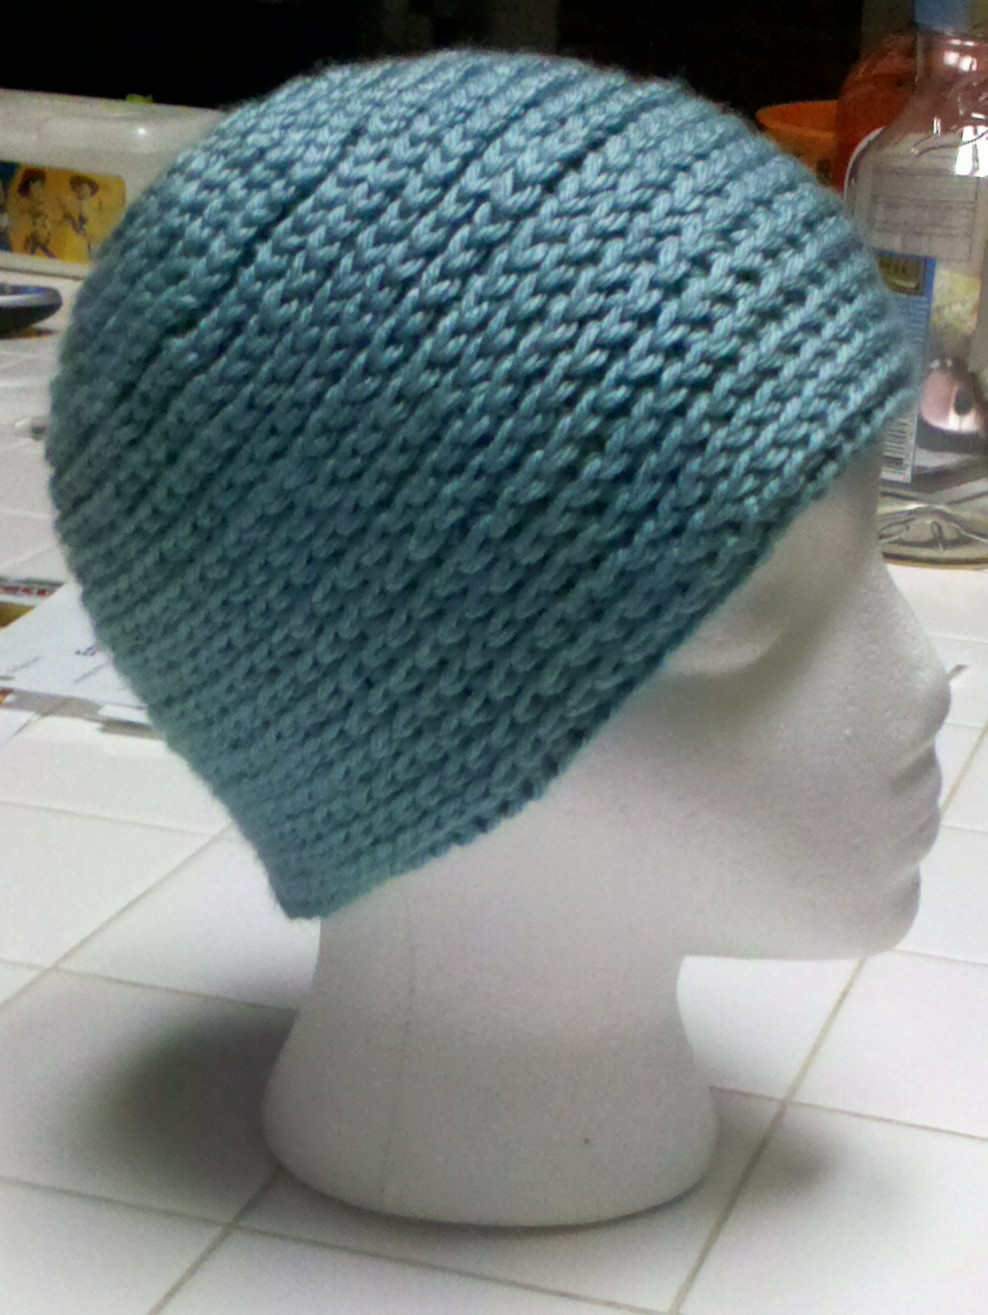 Best Of the Laughing Willow Surface Braid Hat Free Pattern Free Hat Patterns Of Amazing 43 Models Free Hat Patterns